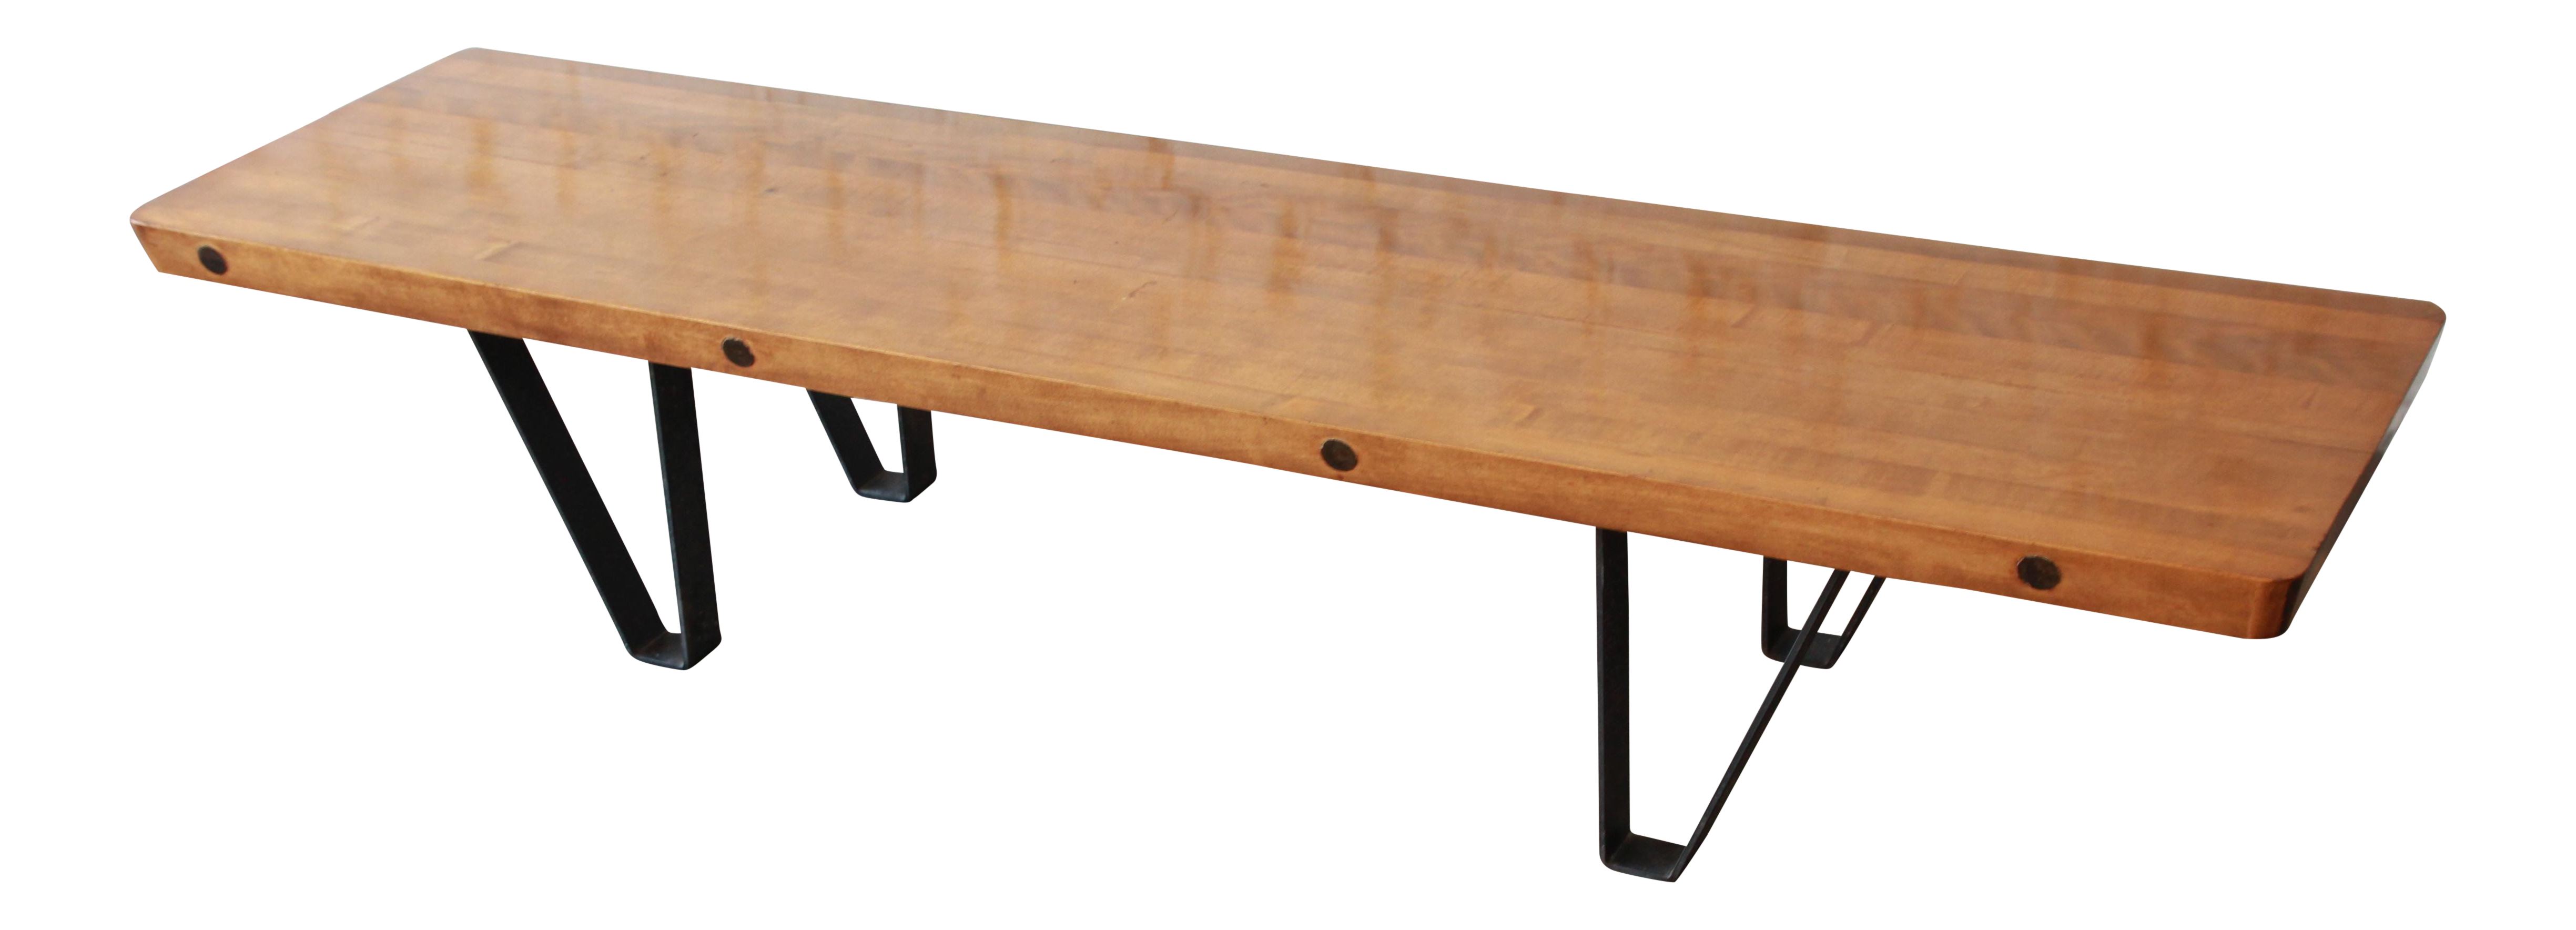 Pleasing Mid Century Modern Long Bench Or Coffee Table With Bowling Lane Top Gmtry Best Dining Table And Chair Ideas Images Gmtryco